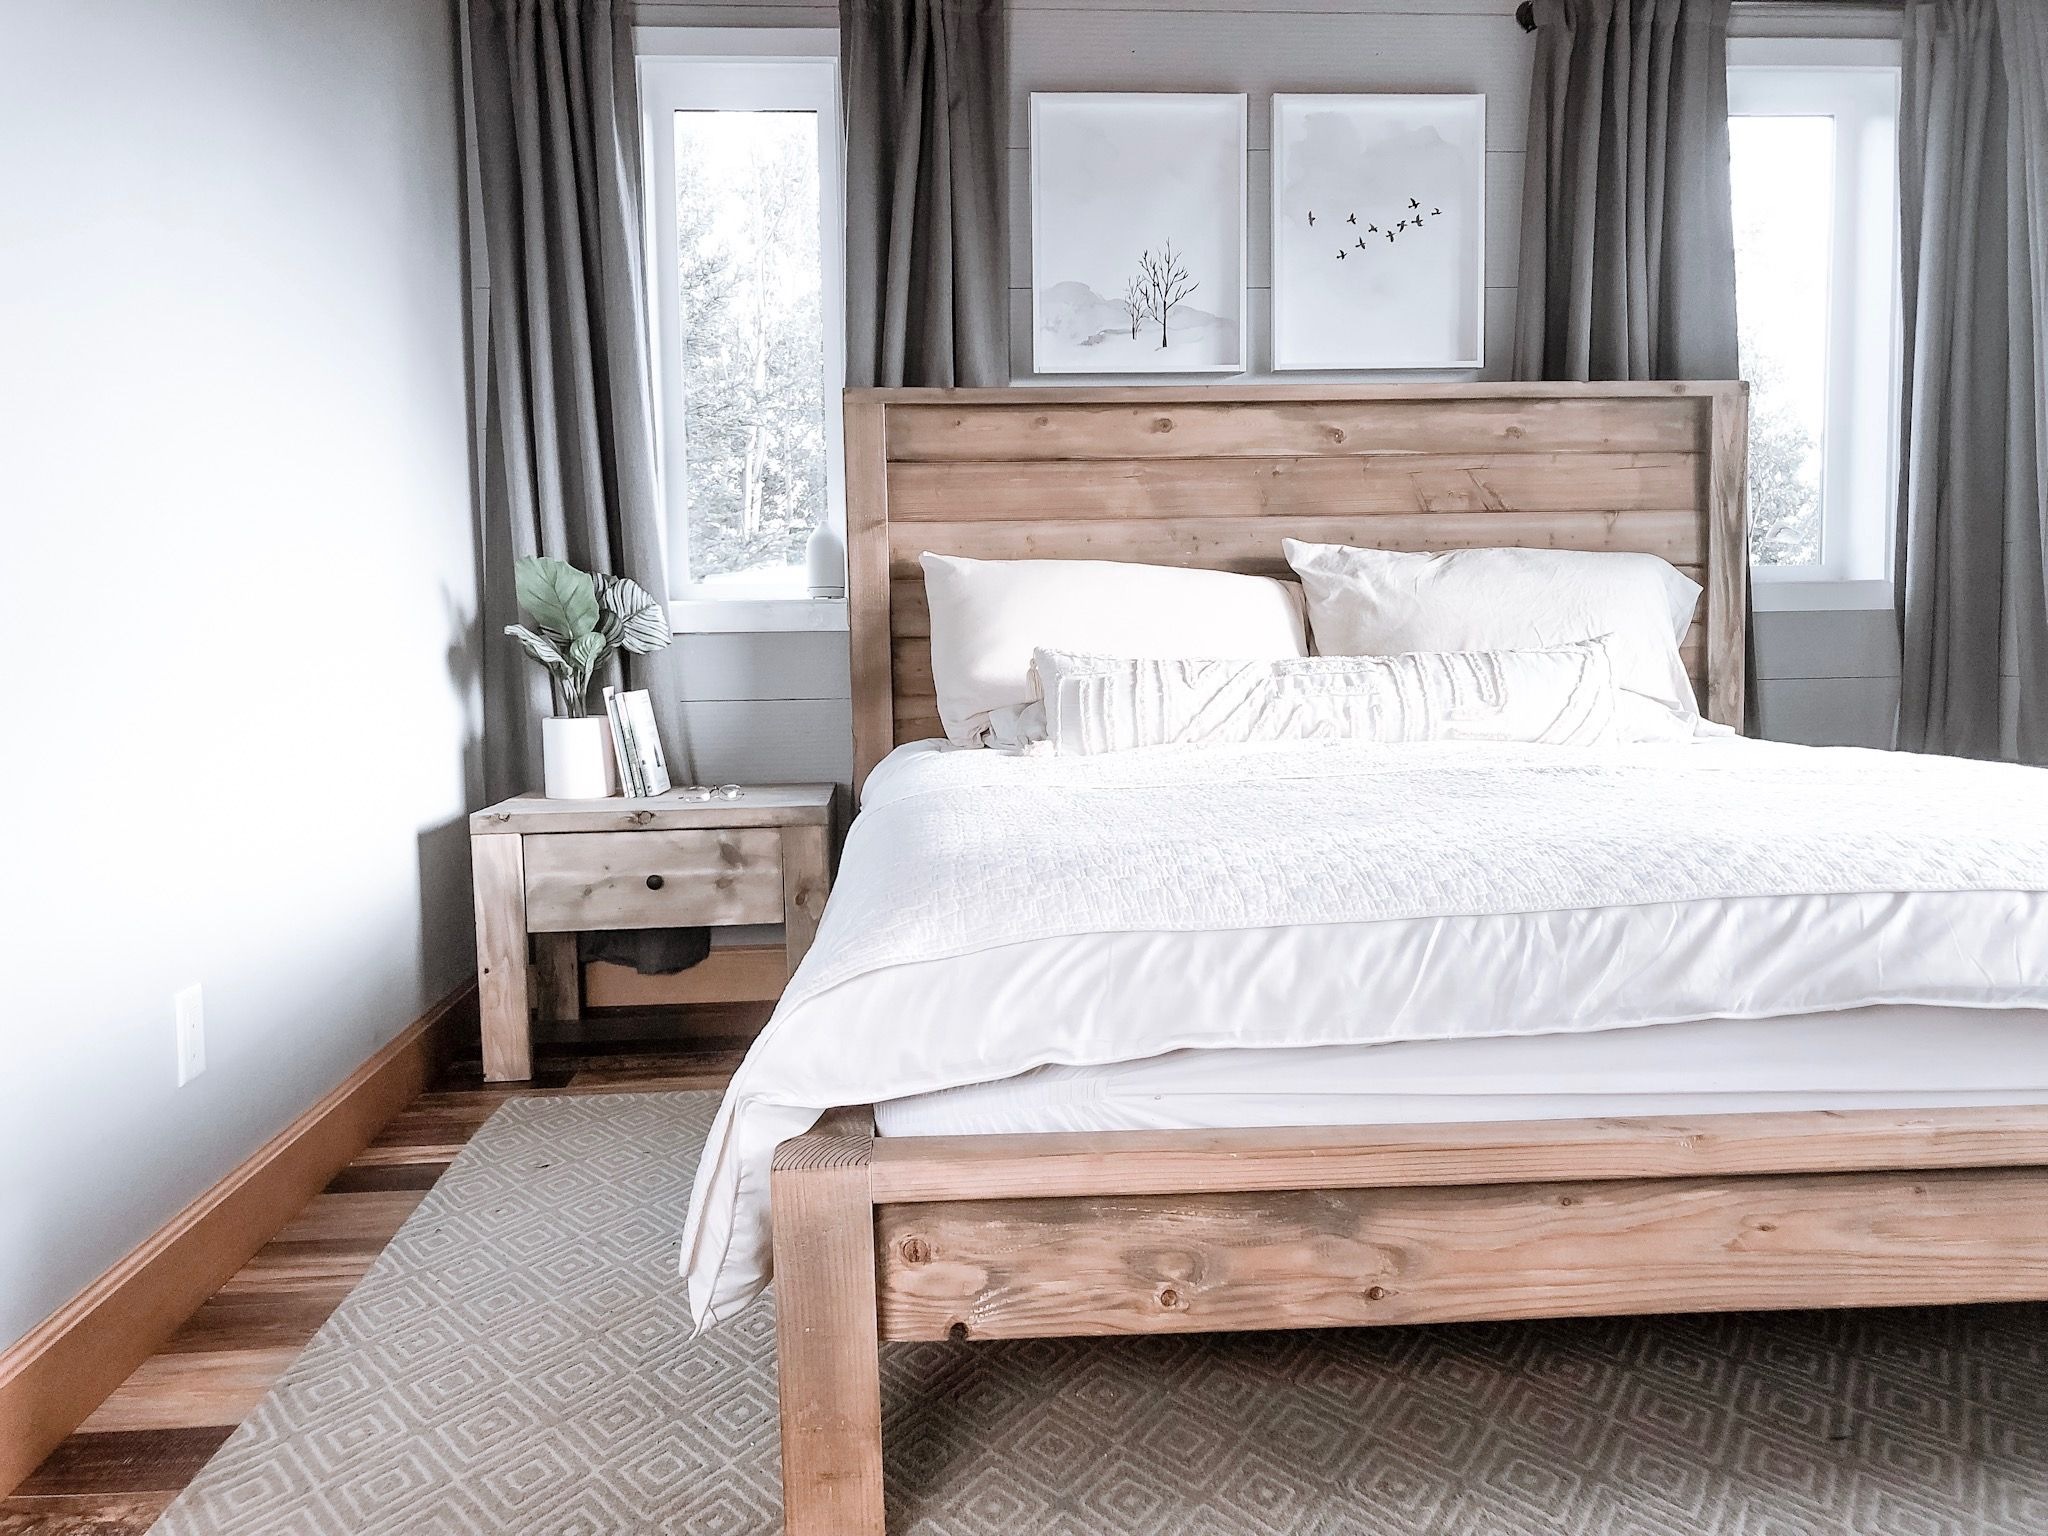 Modern Farmhouse Bed Frame Bed frame, Farmhouse style